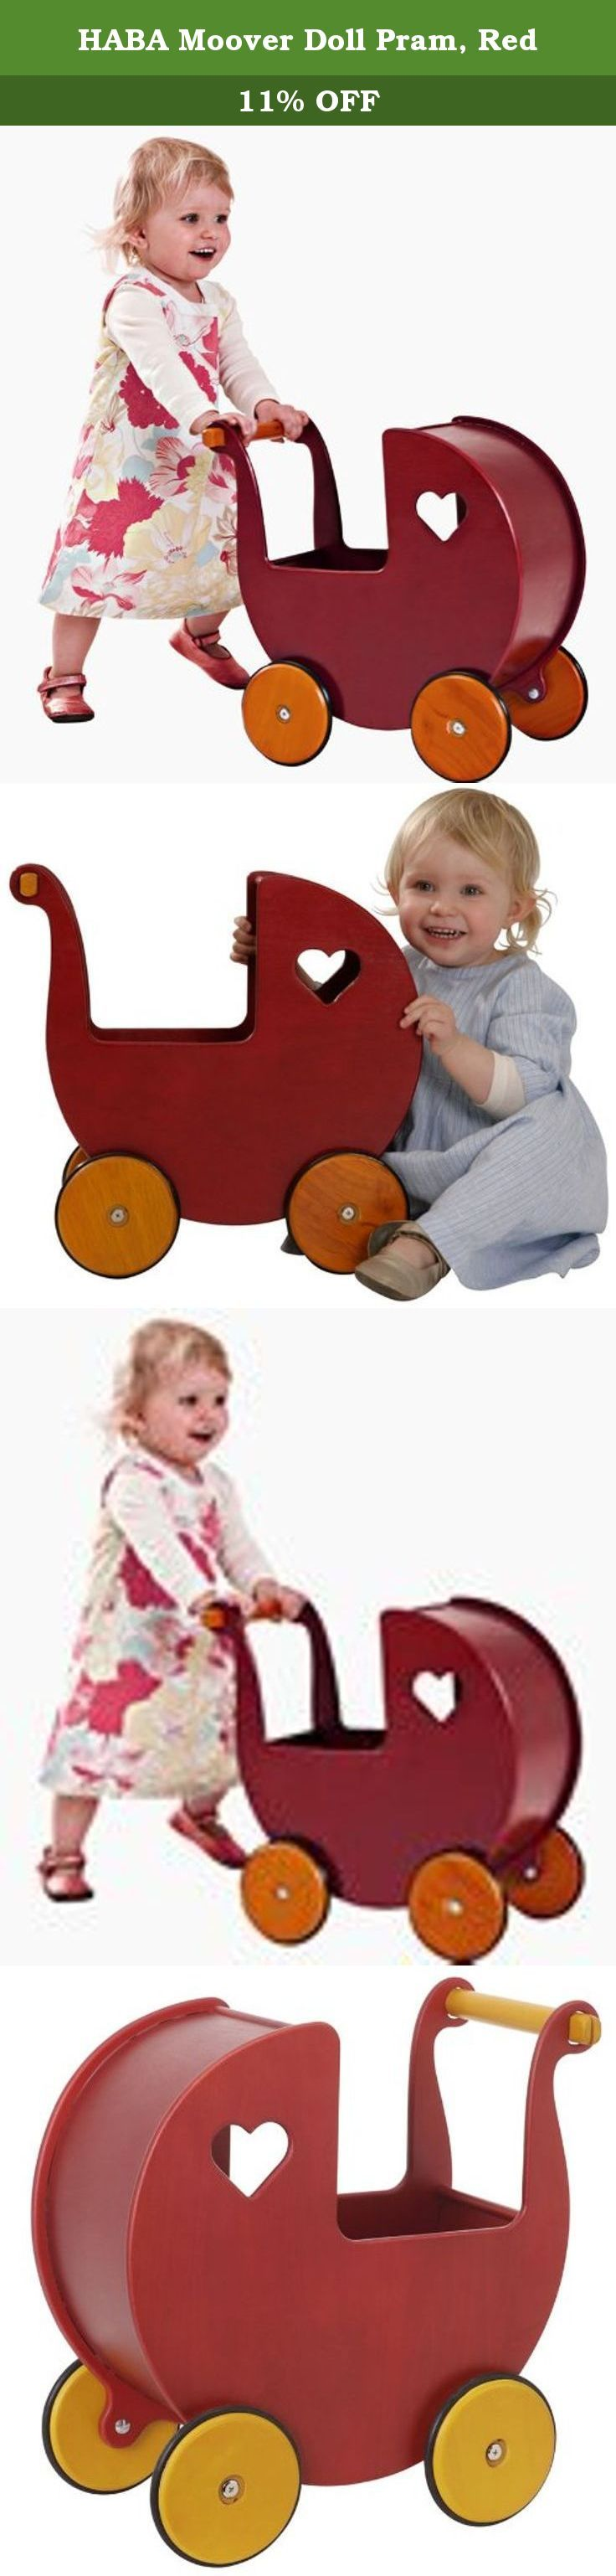 HABA Moover Doll Pram, Red. Your little darling is sure to fall in love with this Doll Pram by Moover Toys. This beautifully made doll carrier will encourage your child to look after their dolls and keep them safe. The wooden wheels and rubber tires allow for both indoor and outdoor use. All Moover toys are crafted from sustainable sources with today's environmentally conscious parent in mind. It is delivered assembled. Ideal for children ages 2 to 3.